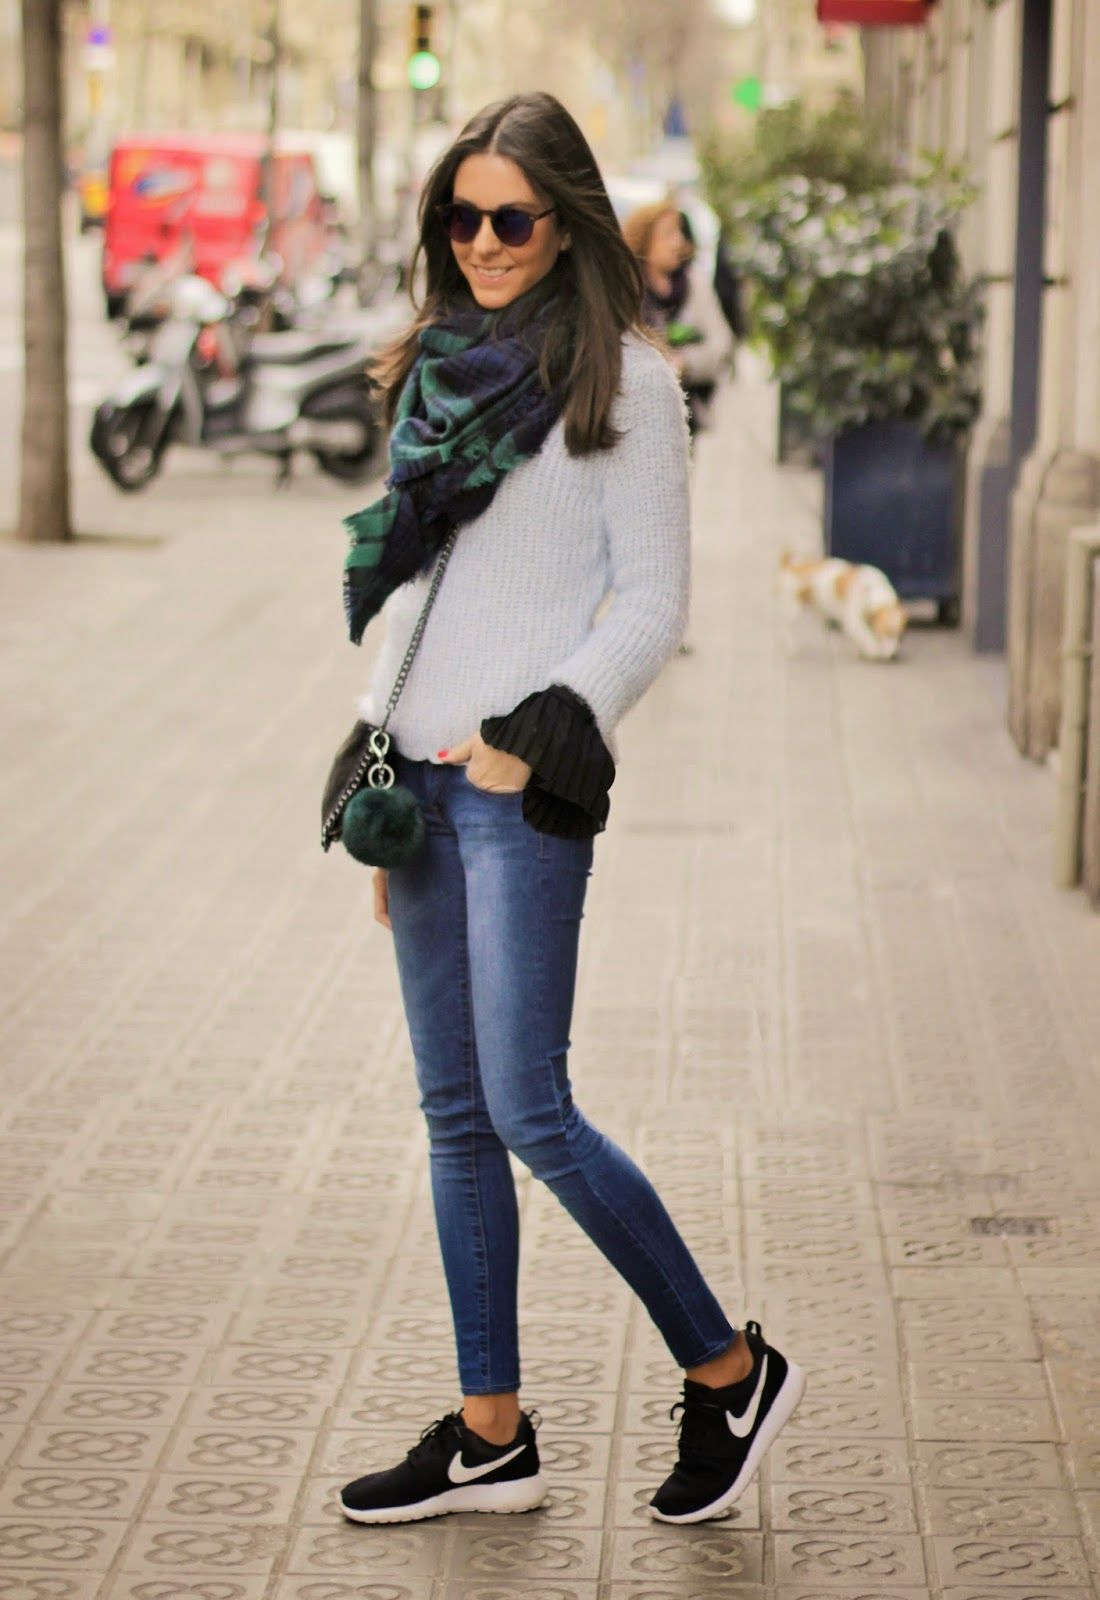 BCN FASHIONISTA I'm obsessed with the blouse with